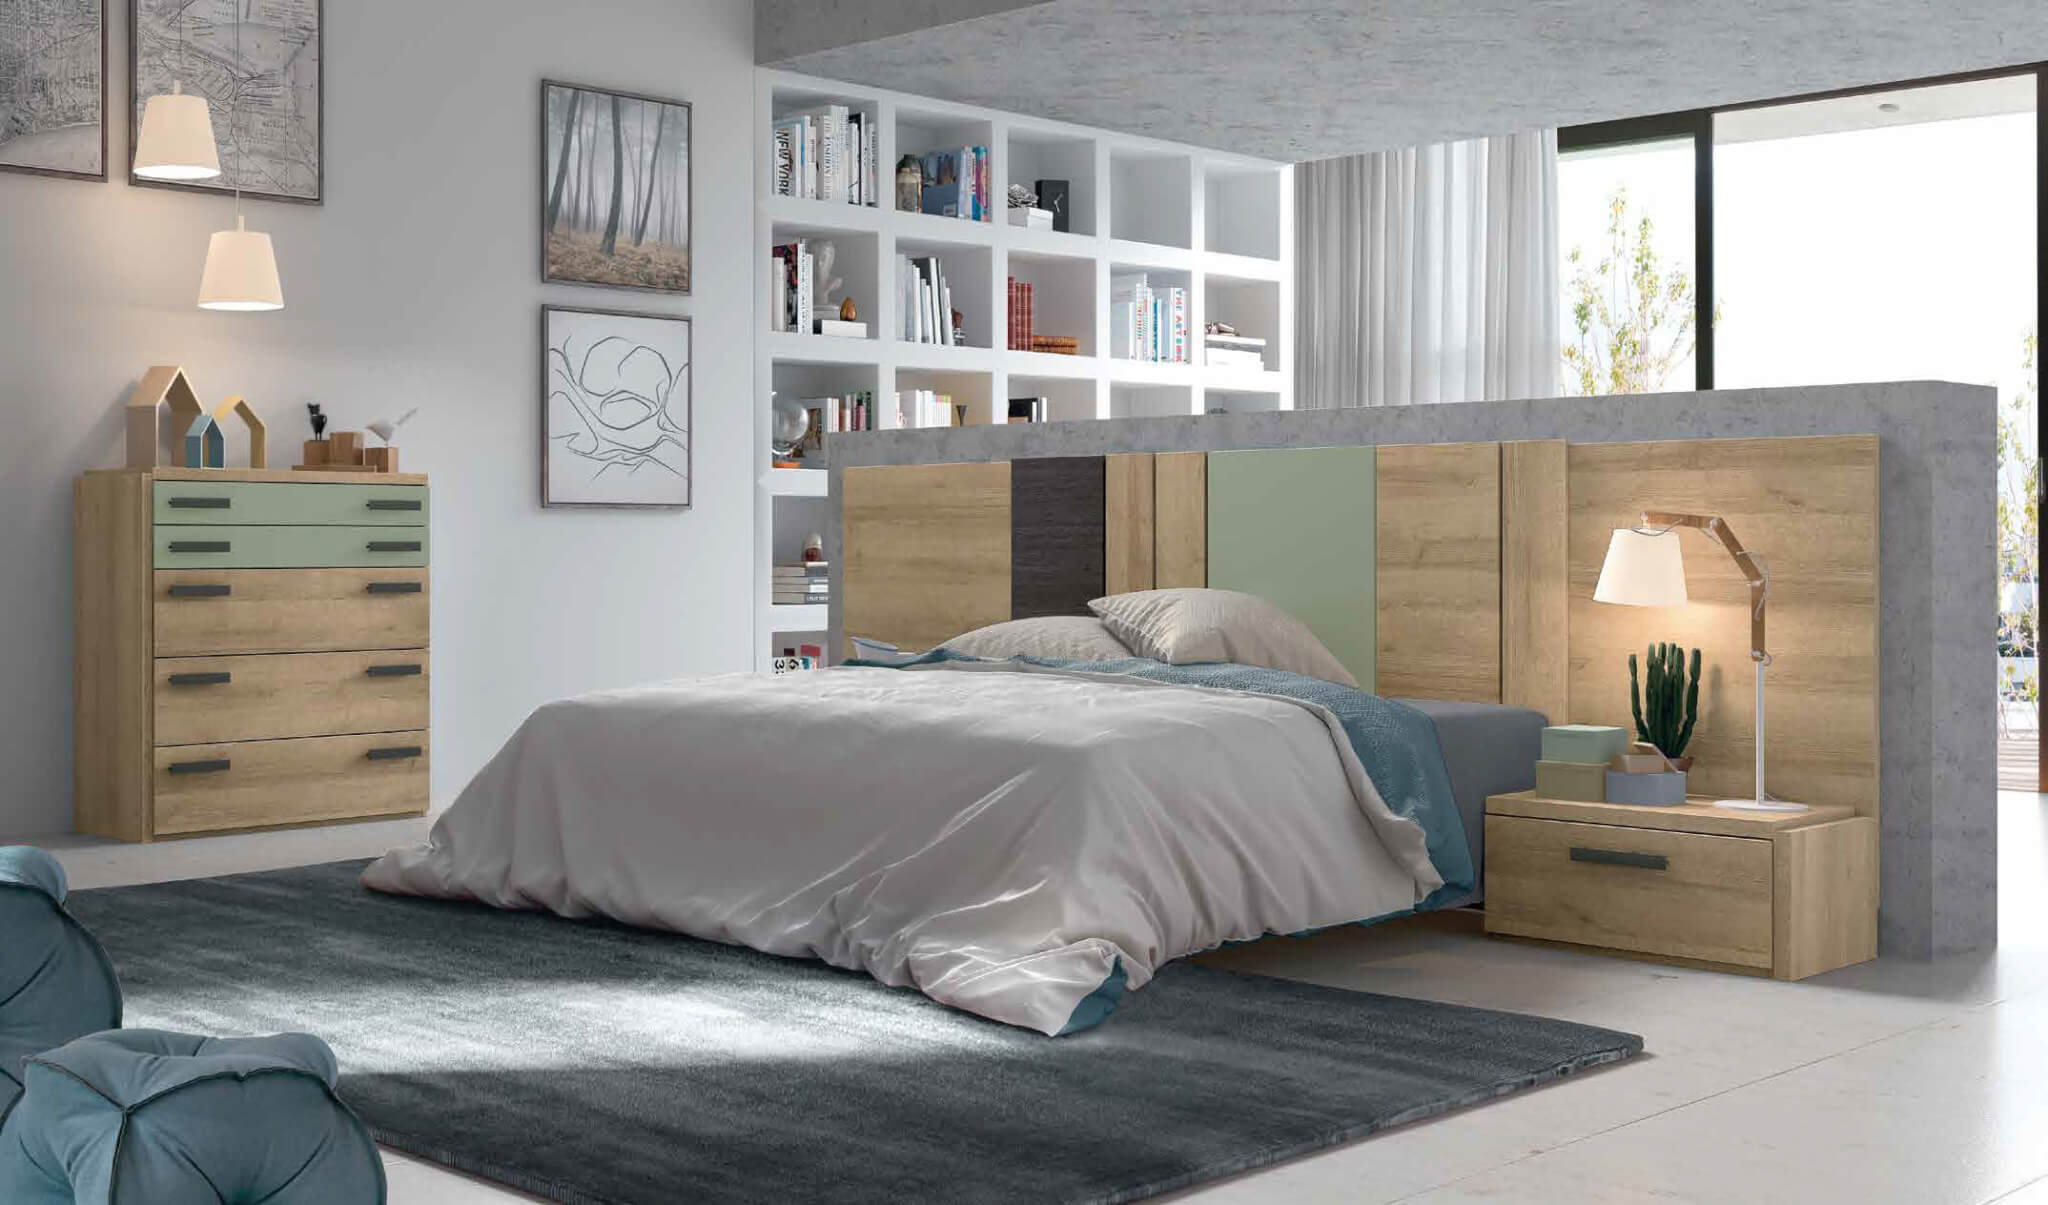 l 39 esprit du salon magasin de meuble de salons auterive toulouse. Black Bedroom Furniture Sets. Home Design Ideas